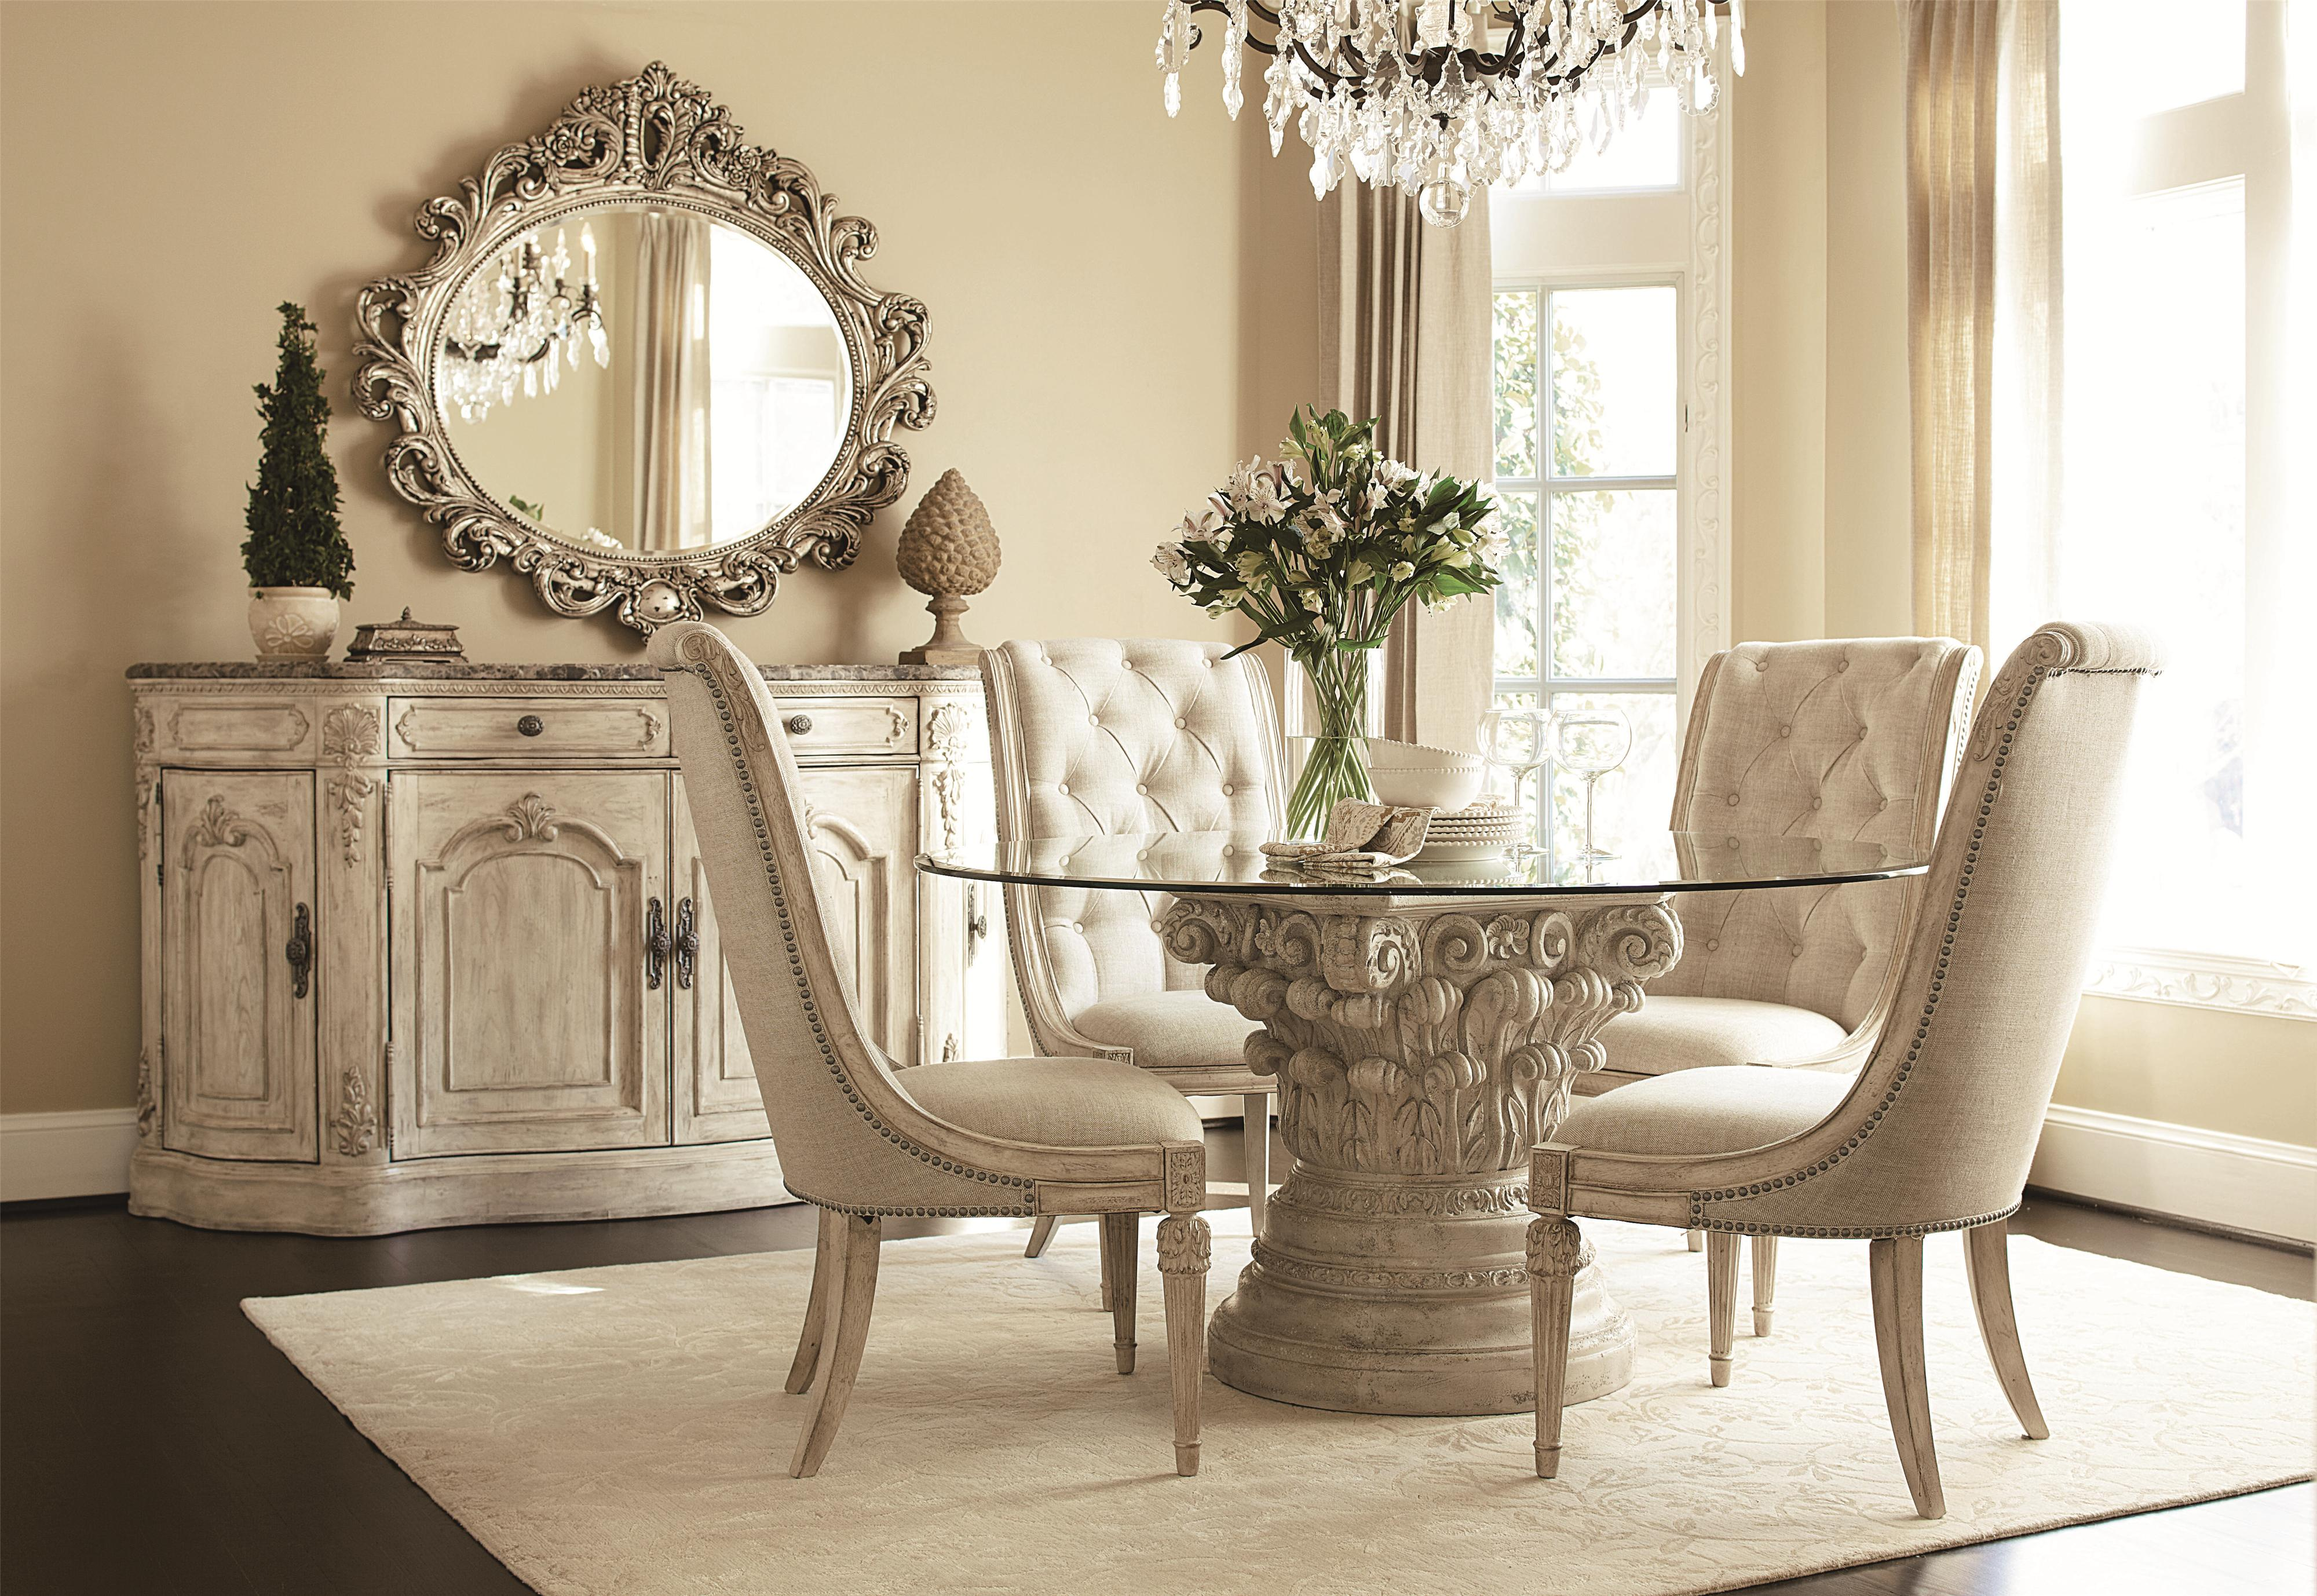 Beautiful Pedestal Table Base for Glass Top | HomesFeed